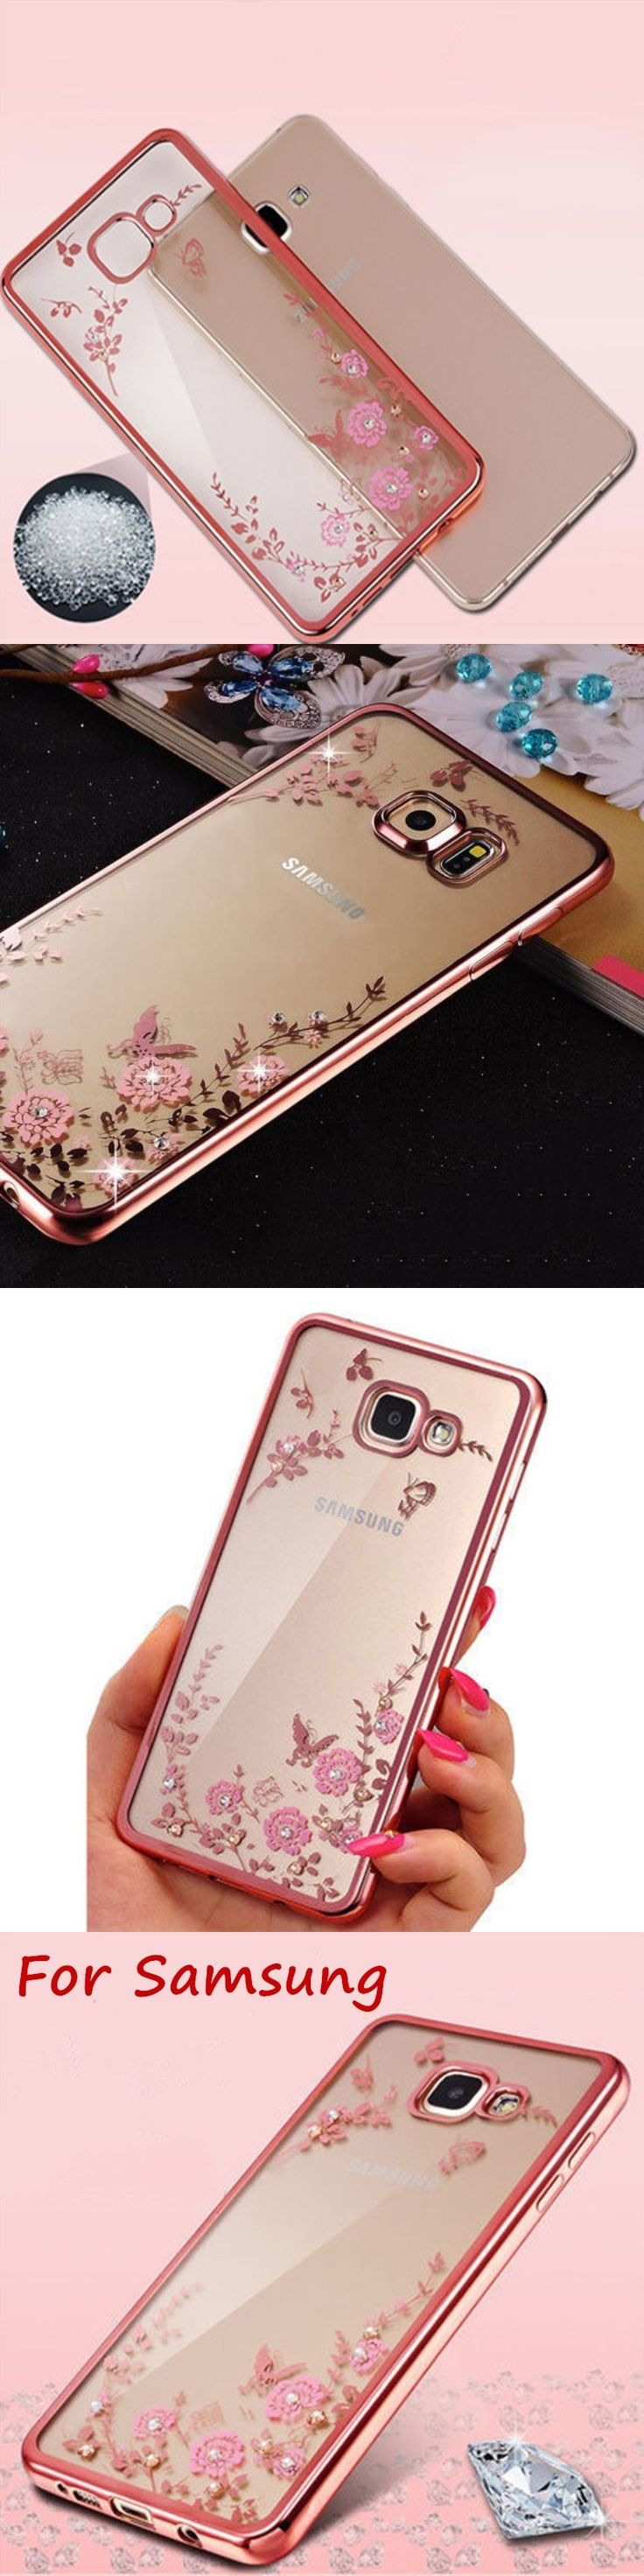 RHOADA Case for Samsung Galaxy A3 A5 A7 2016 J3 J5 J7 S5 S6 S7 S8 Edge NOTE 3 4 5 Chic Flower Bling Soft TPU Clear Back Cover